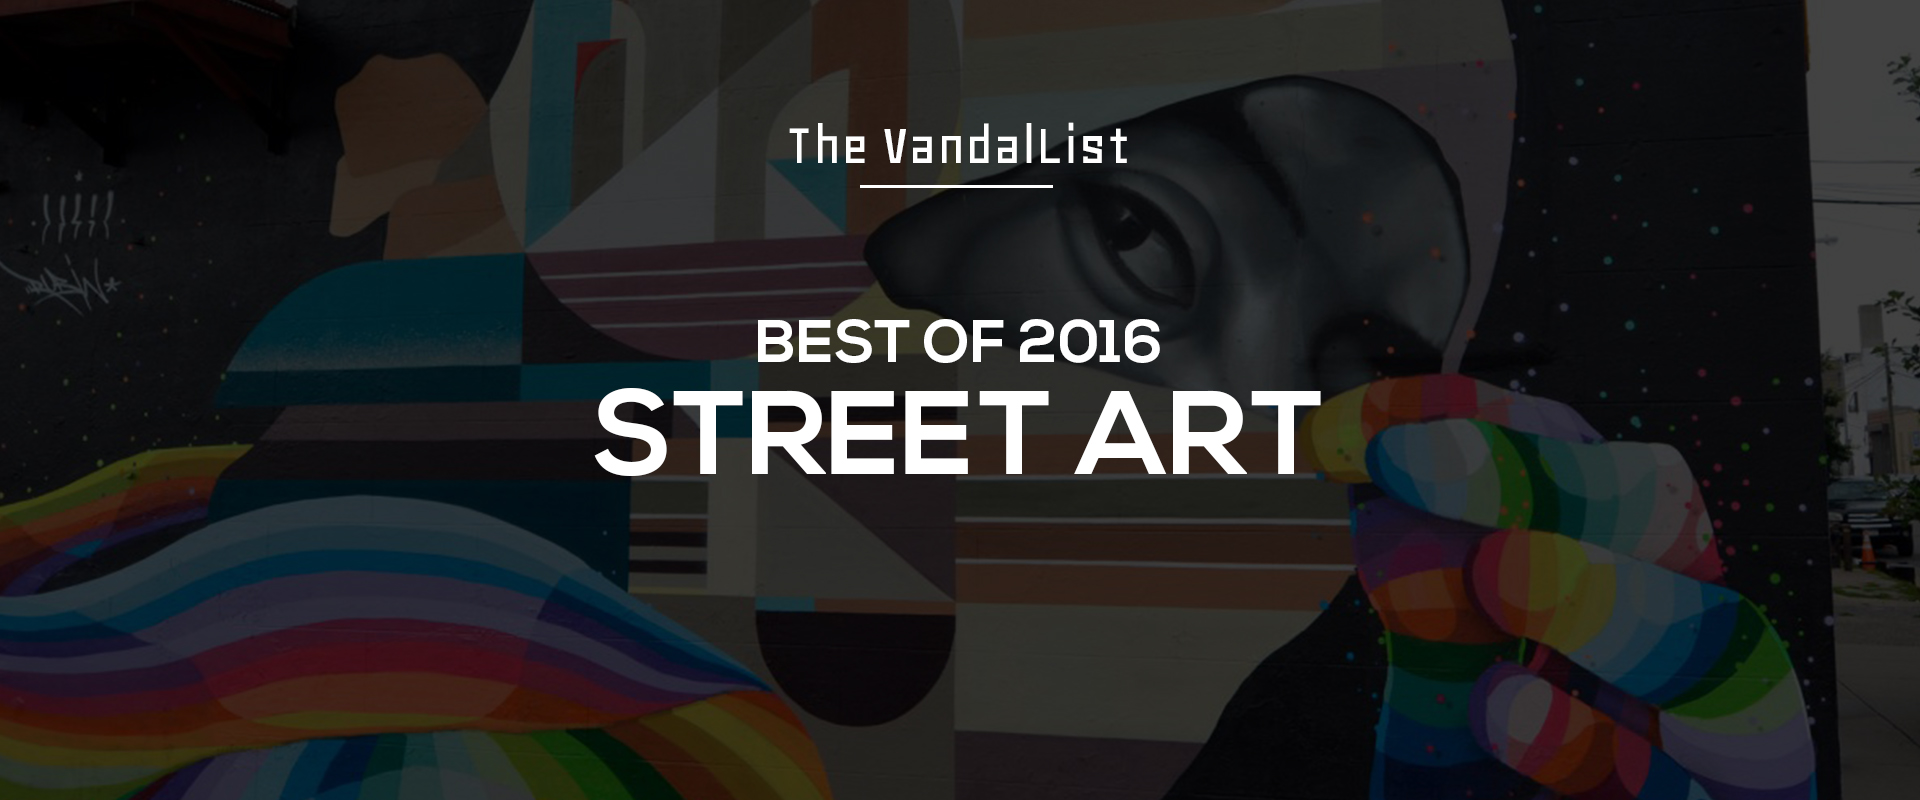 best-of-street-art-2016